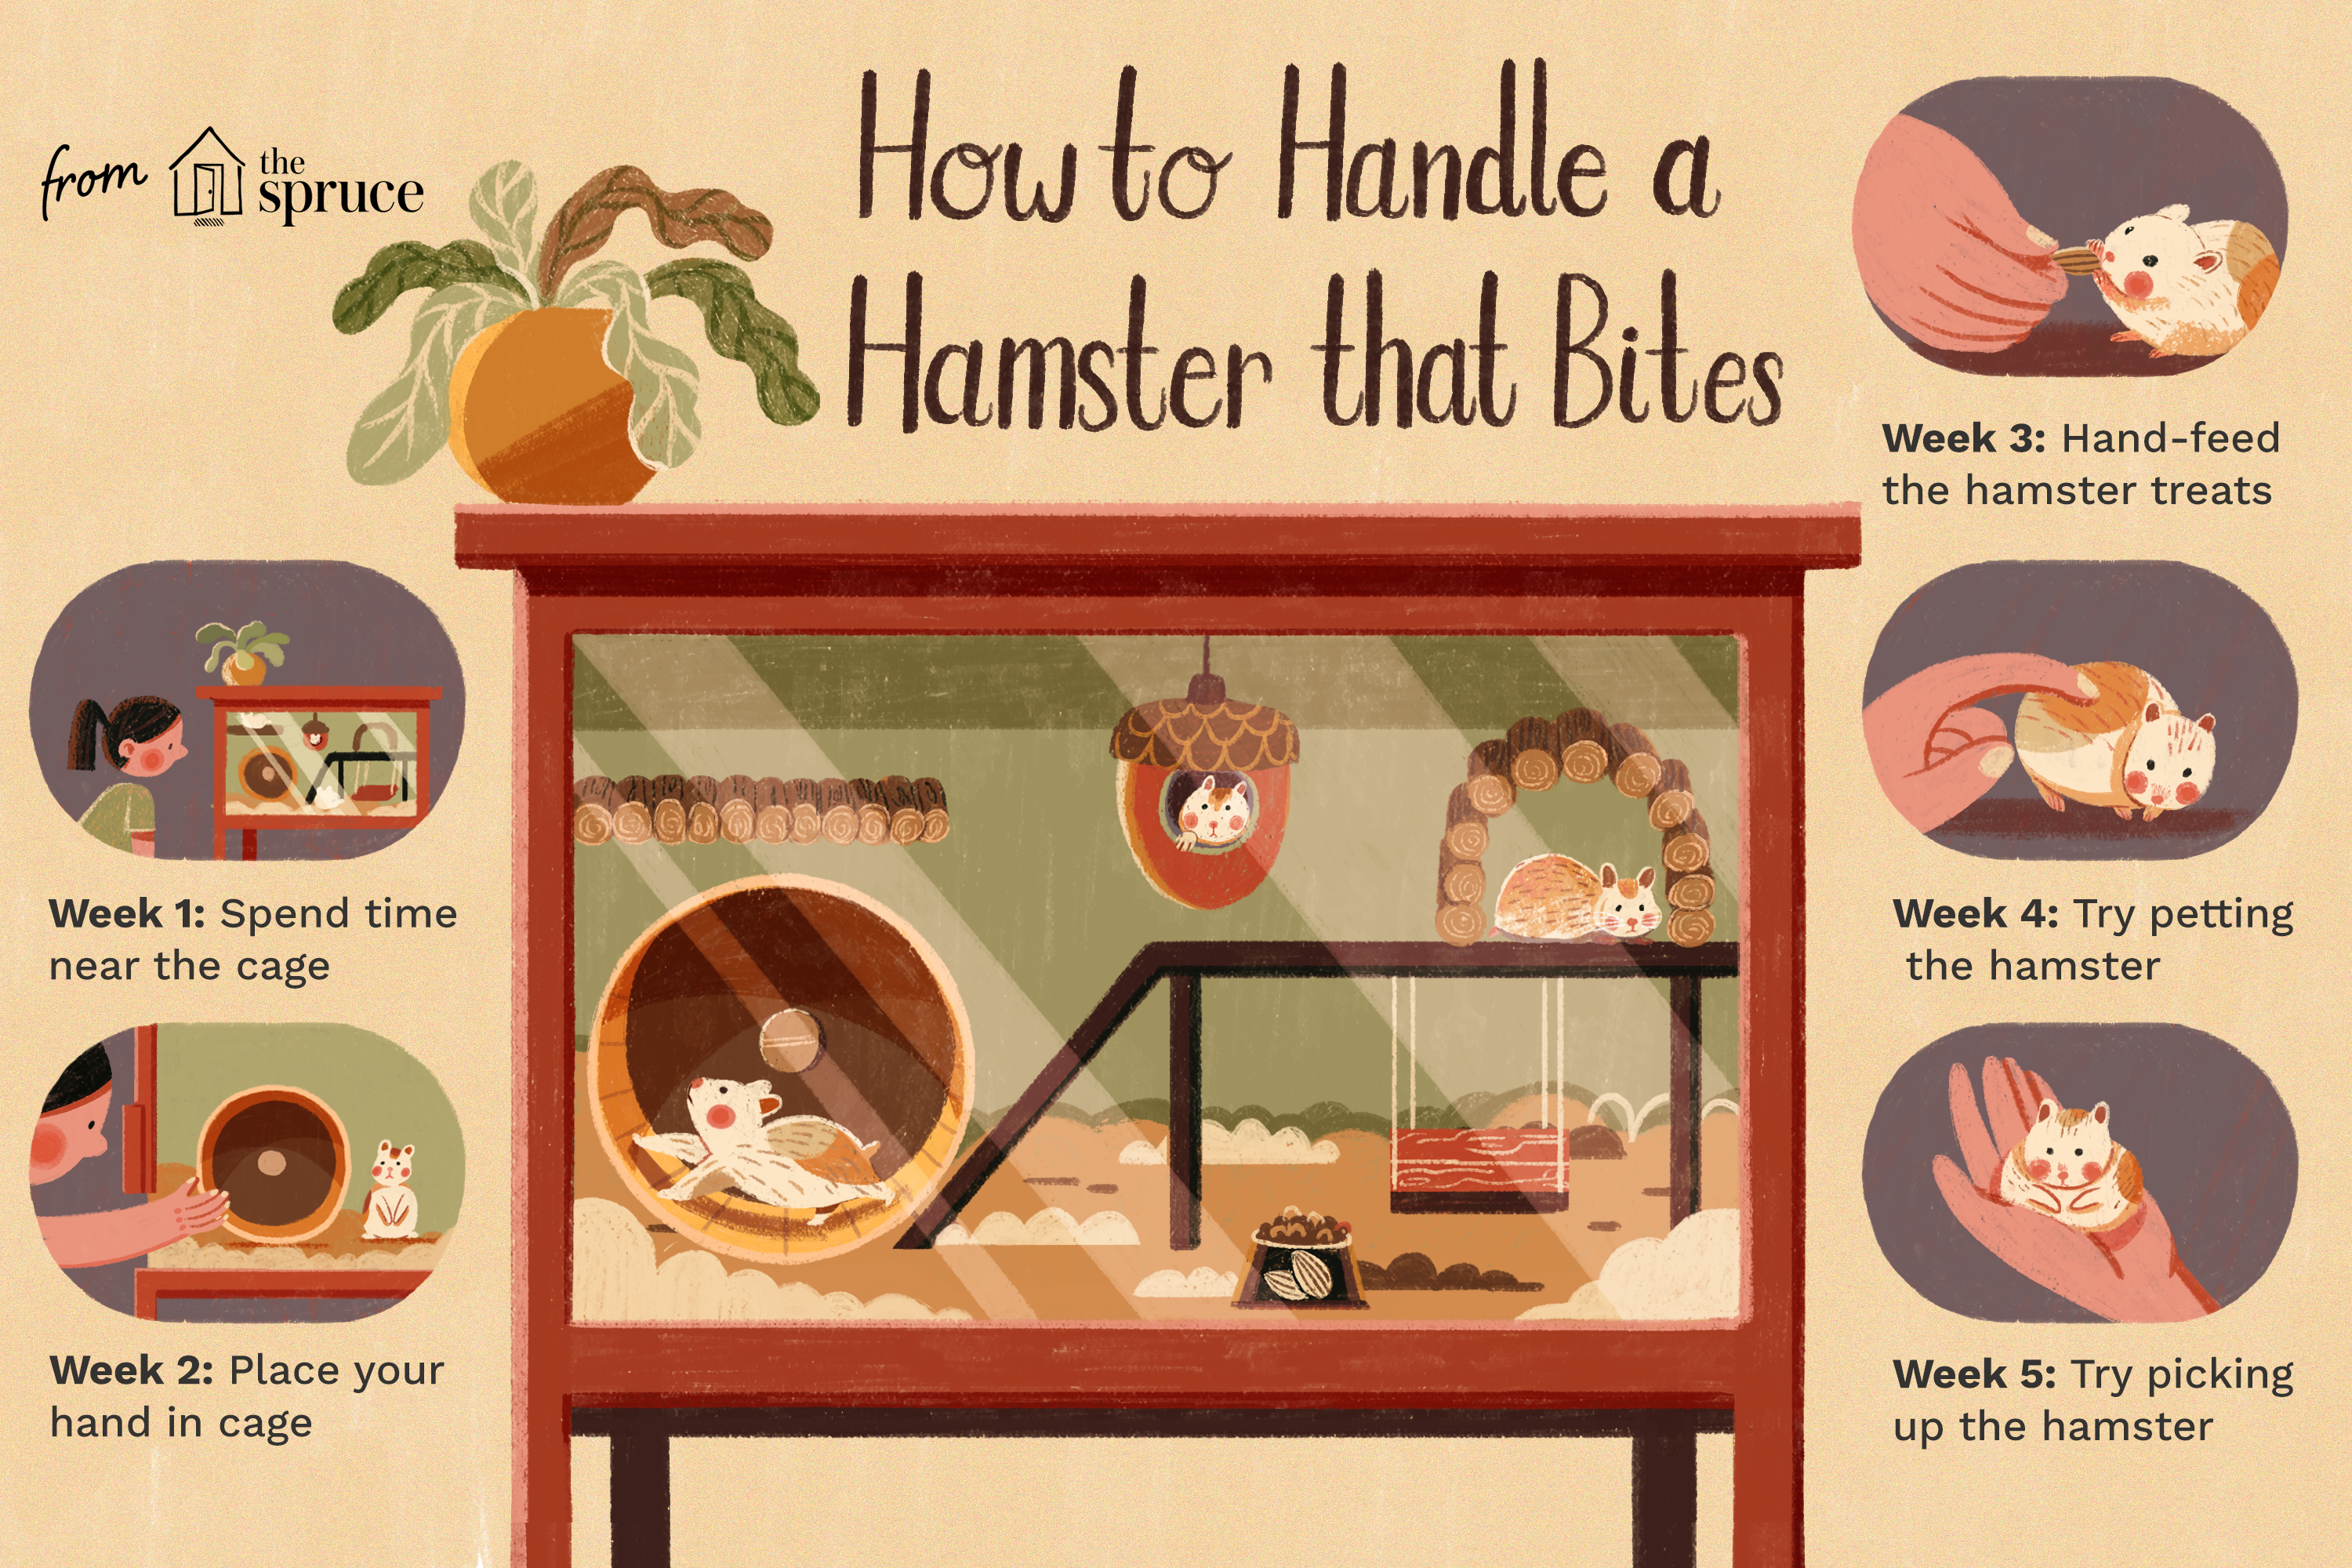 how to handle a hamster that bites illustration